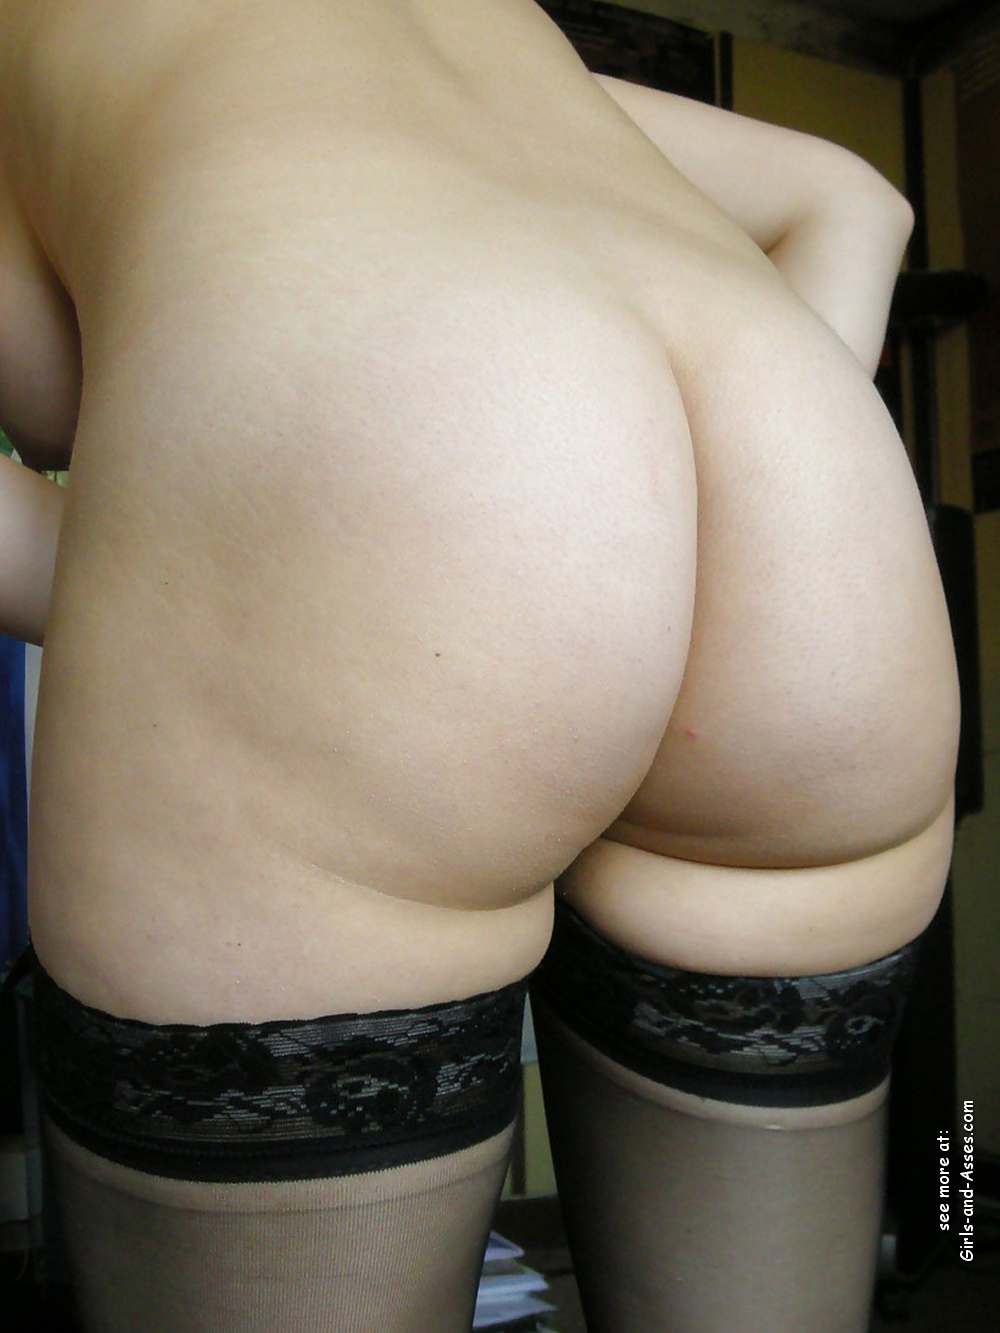 naked mom ass picture 03040